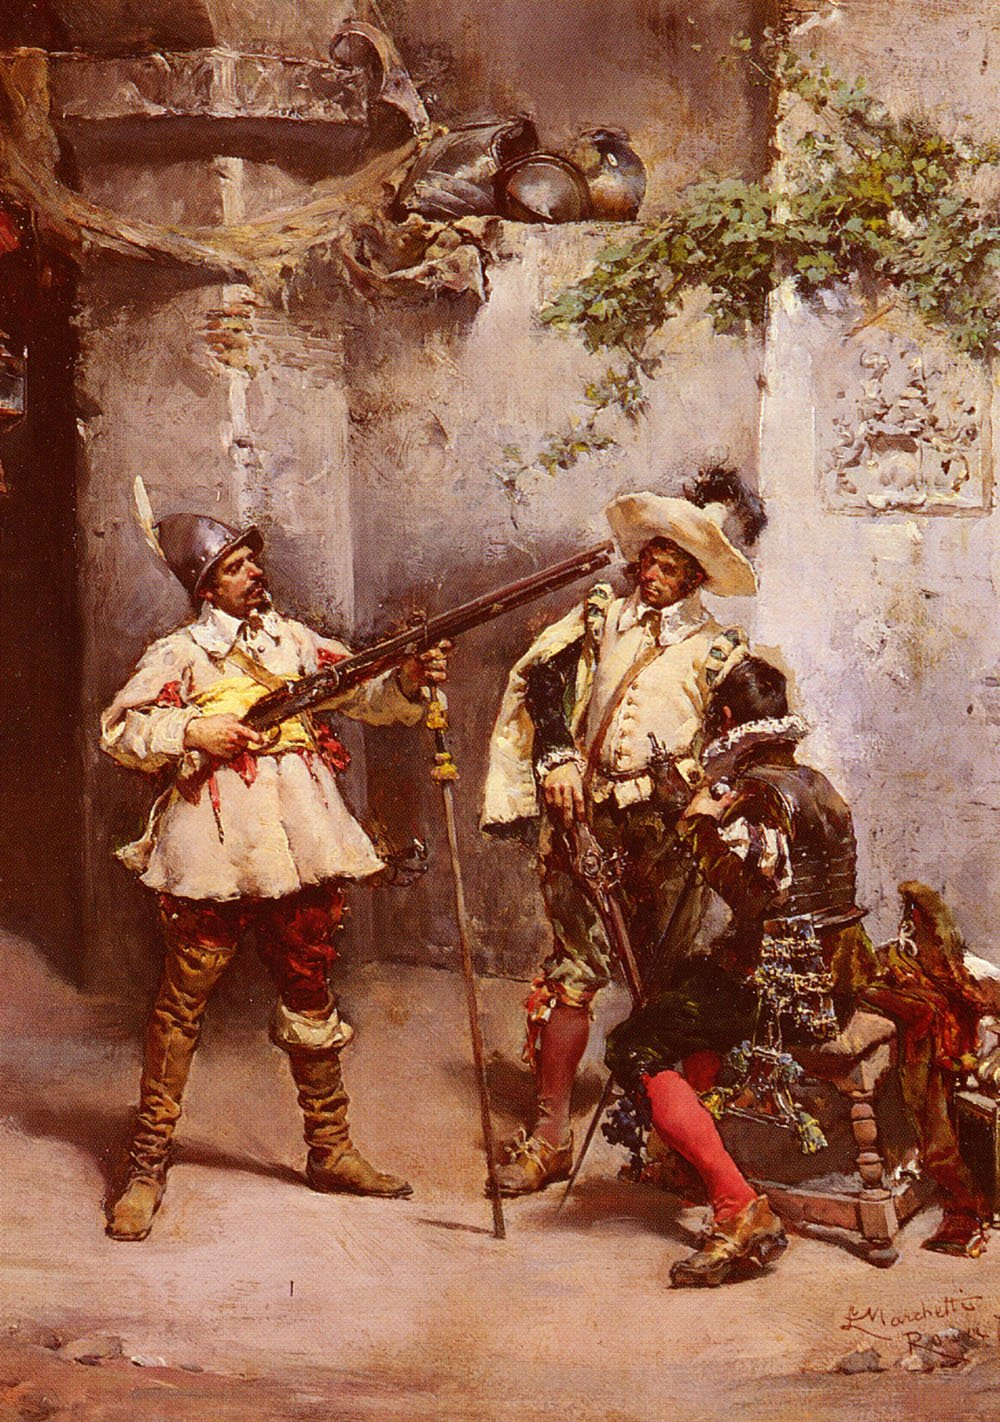 The Musketeers | Ludovico Marchetti | Oil Painting